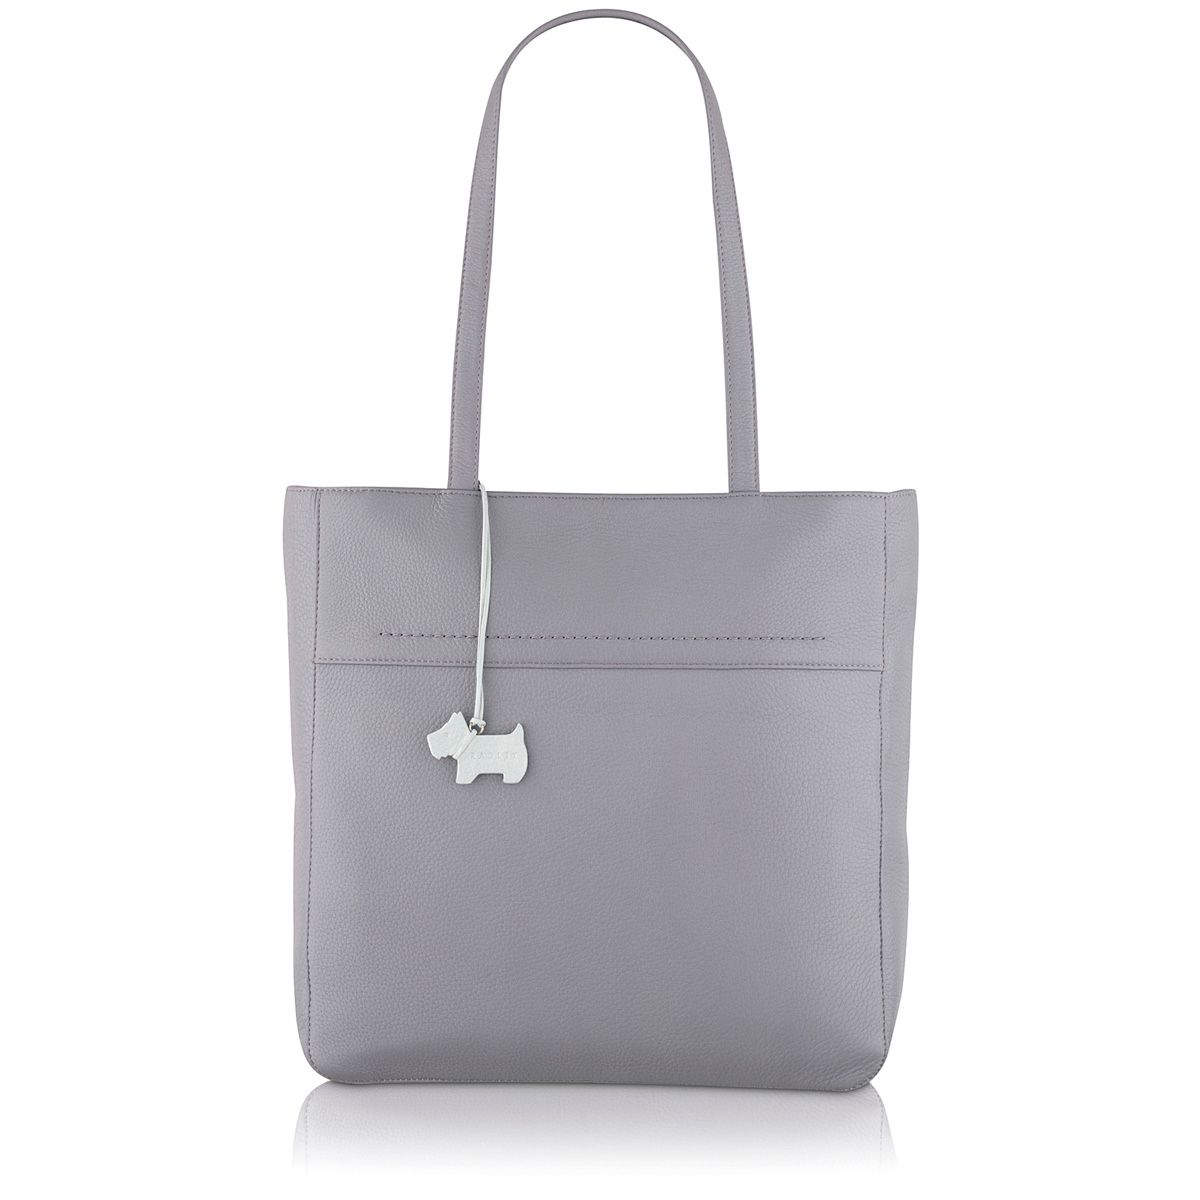 Purple large tote bag